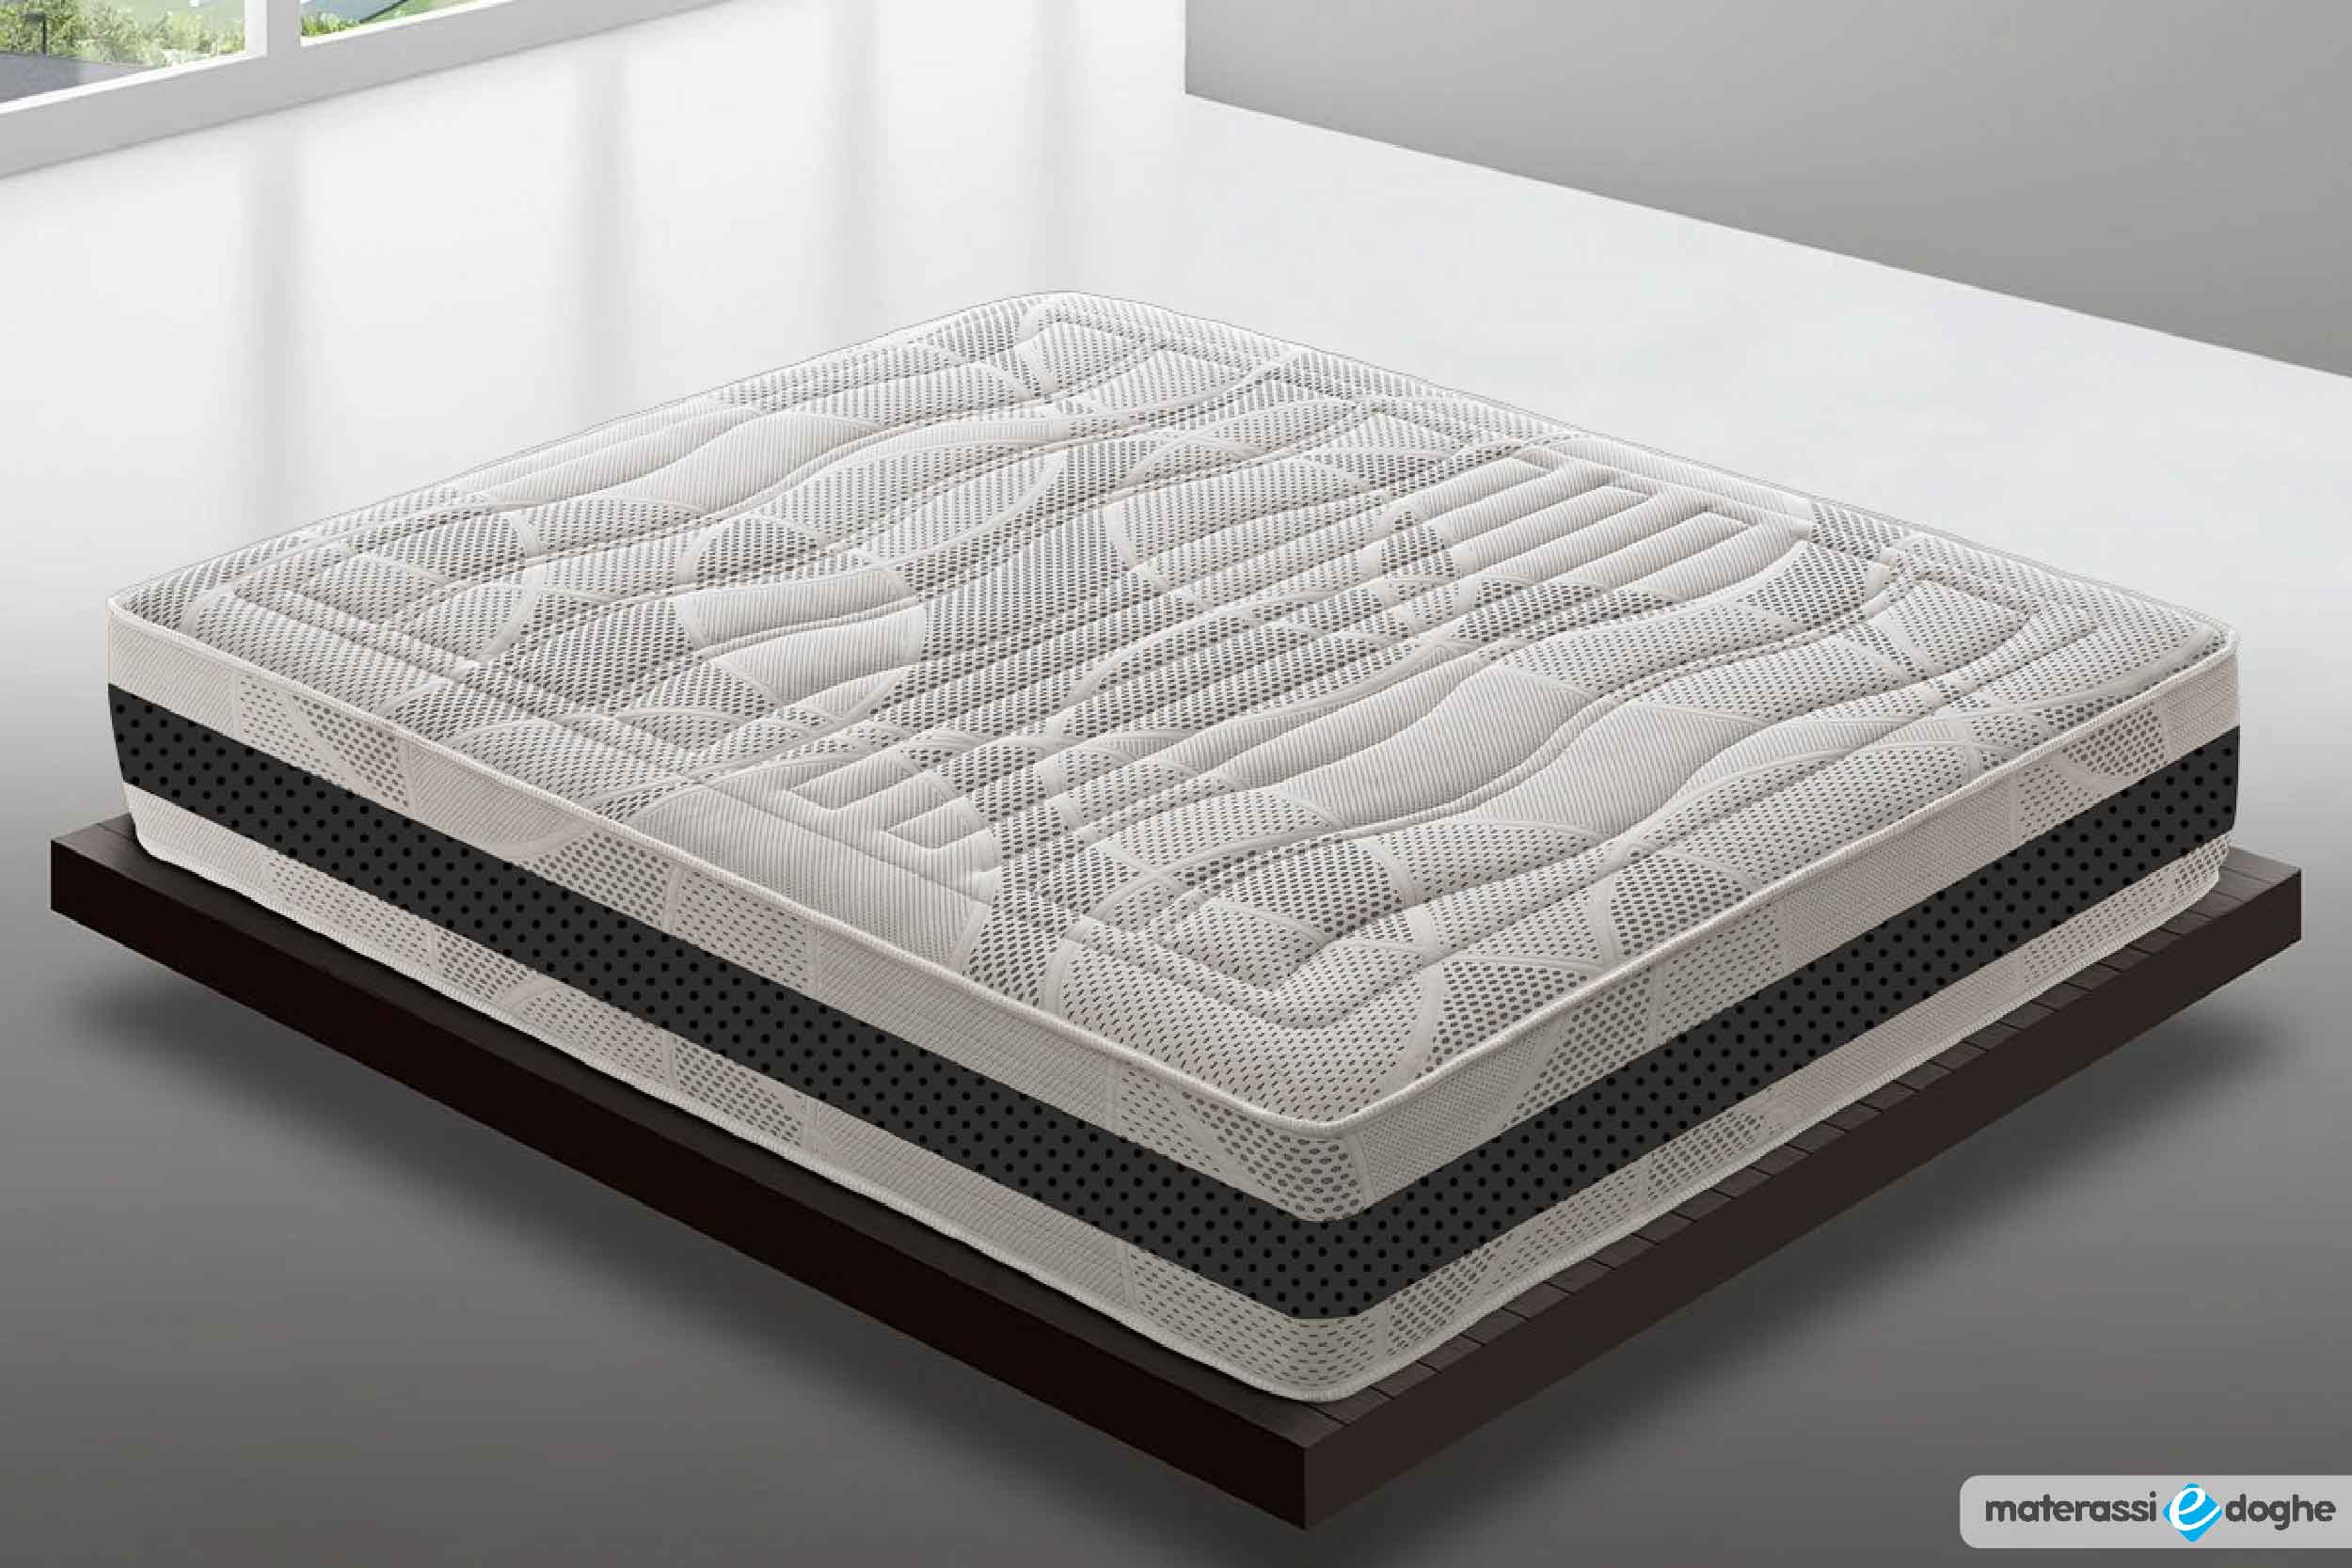 Memory Foam Mymemory Mattress Deluxe With 11 Different Areas And Biooceramics Fir 28cm High Materassi E Doghe